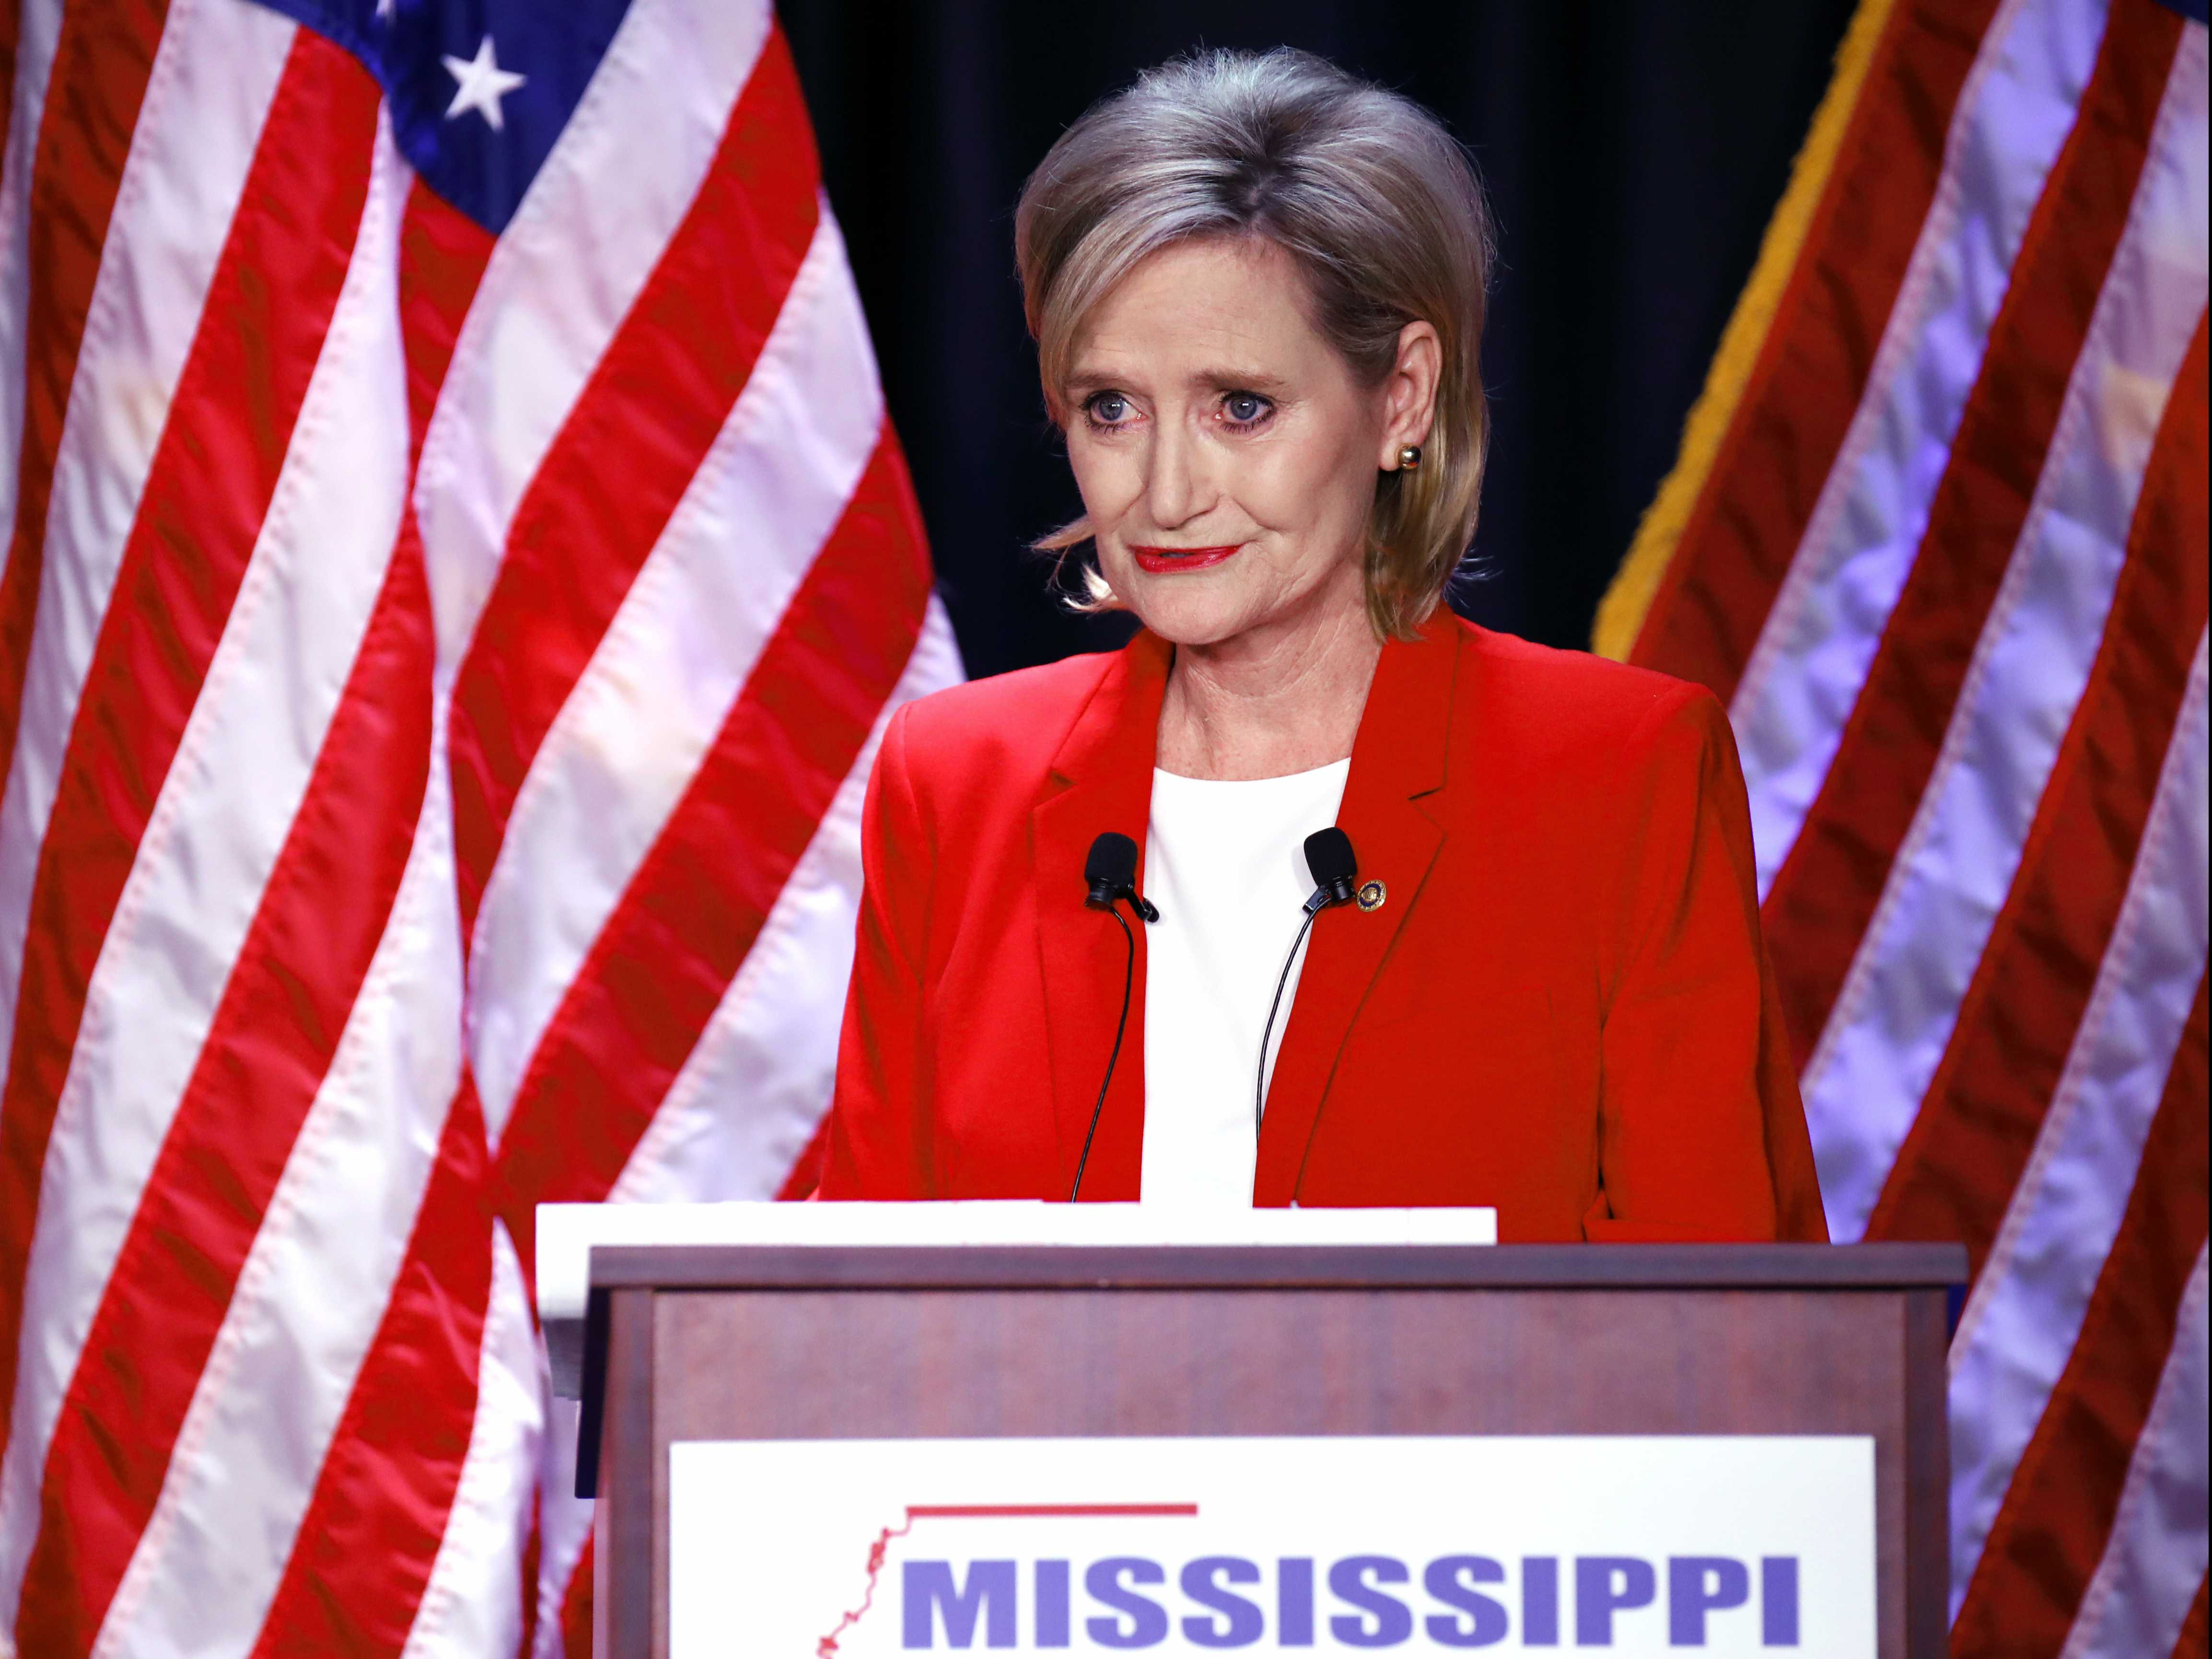 Mississippi Senator Banking on Boost from Trump Rallies